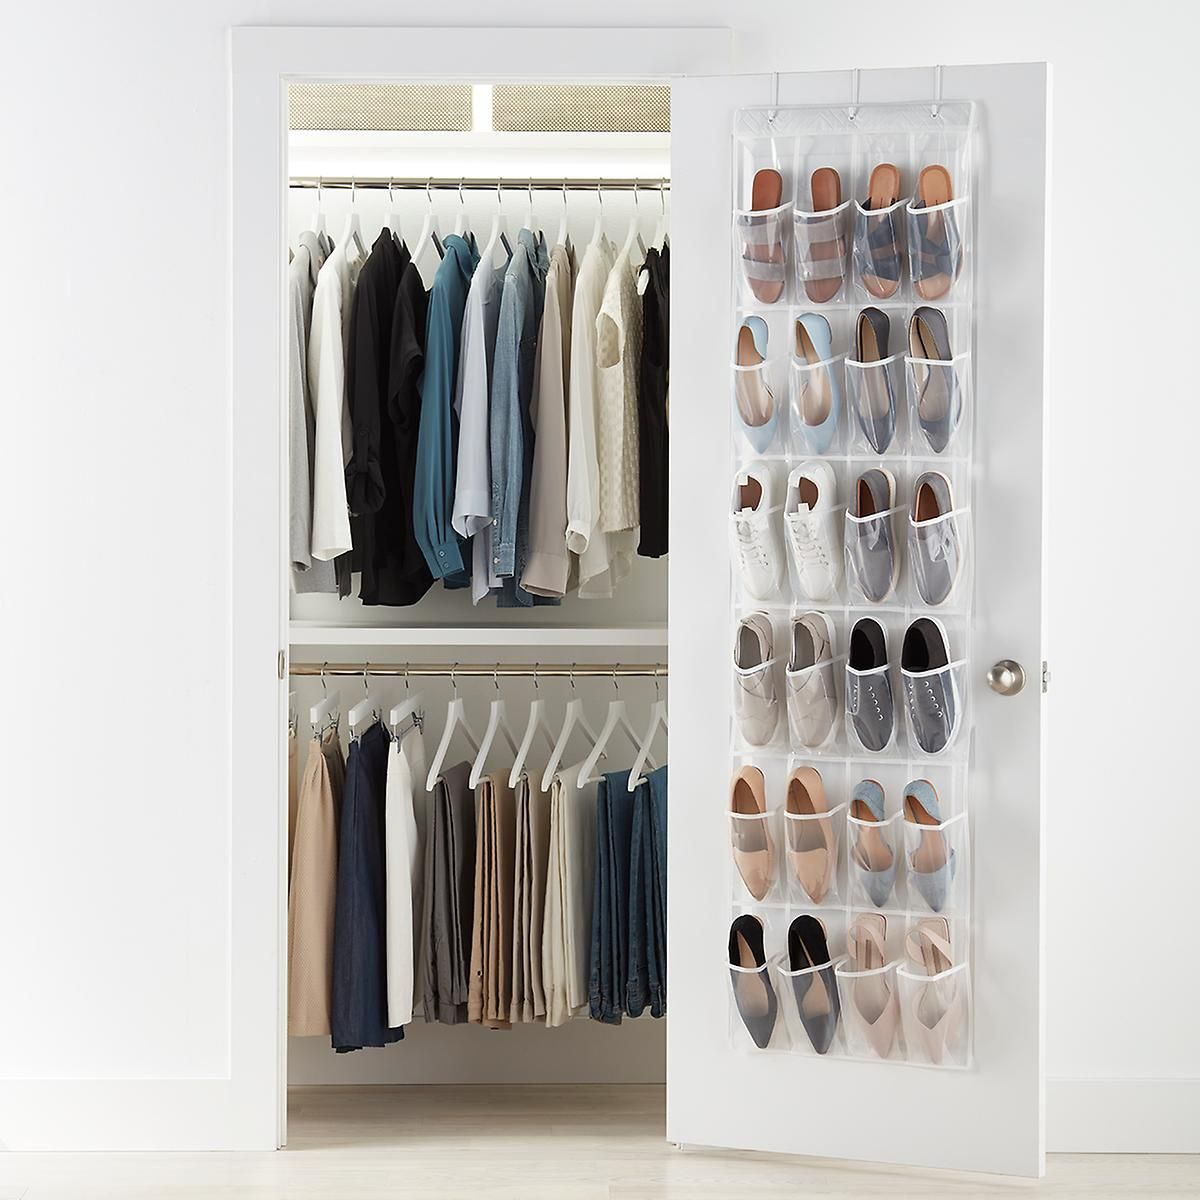 28 Best Shoe Organizers 2021 The Strategist New York Magazine